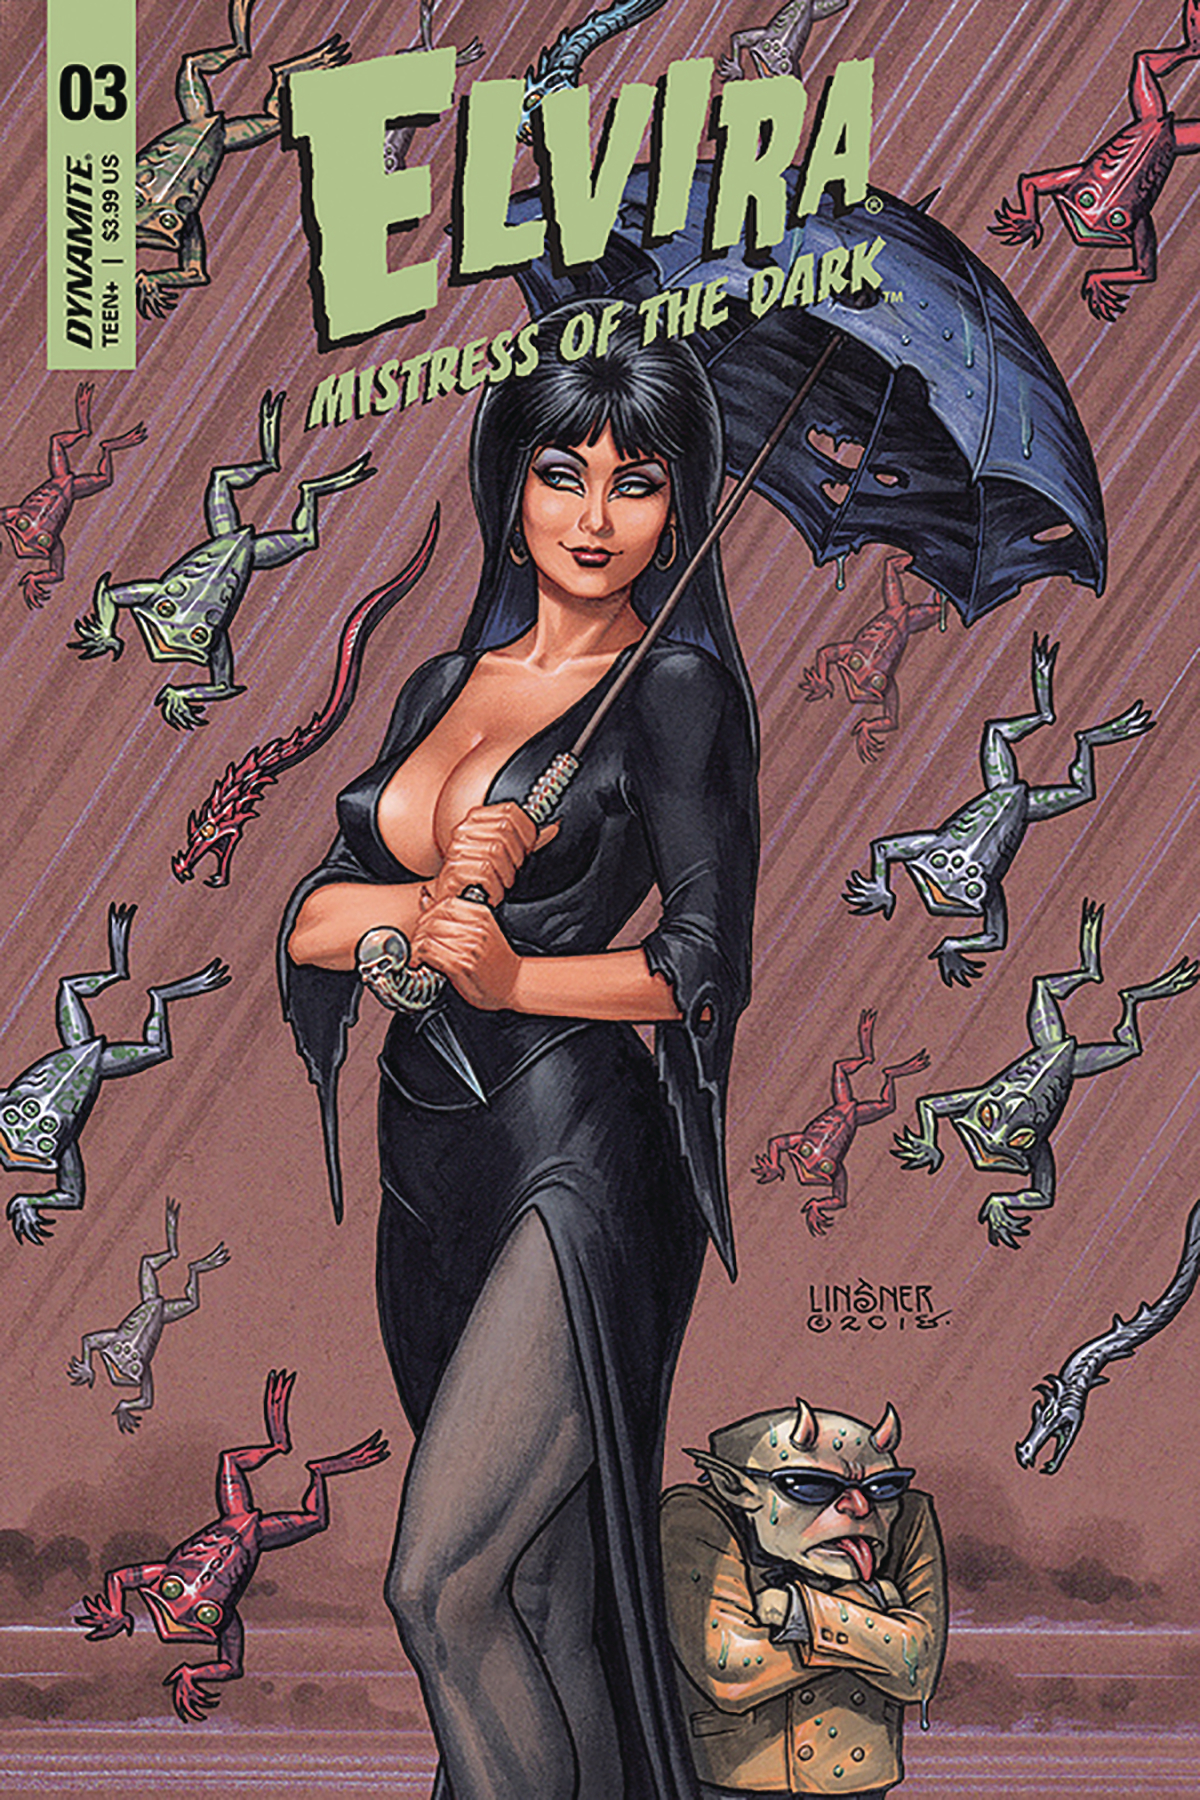 ELVIRA MISTRESS OF DARK #3 CVR A LINSNER